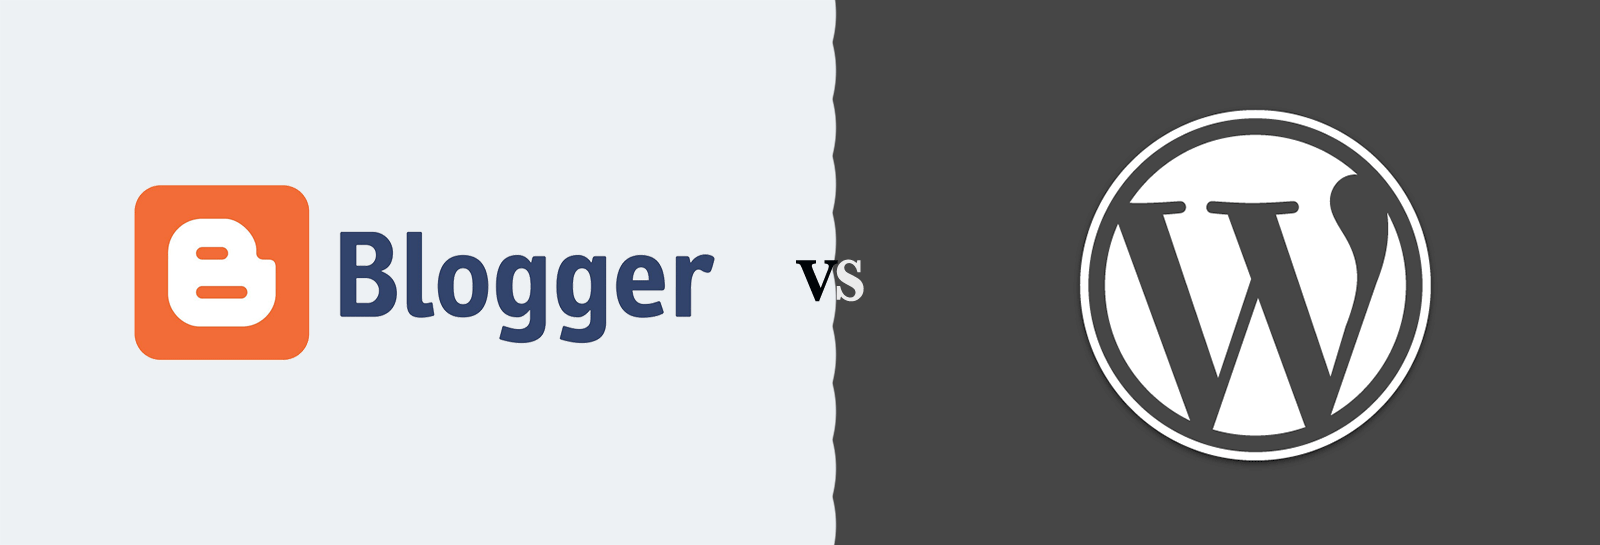 What is Better for SEO? Blogger or WordPress?